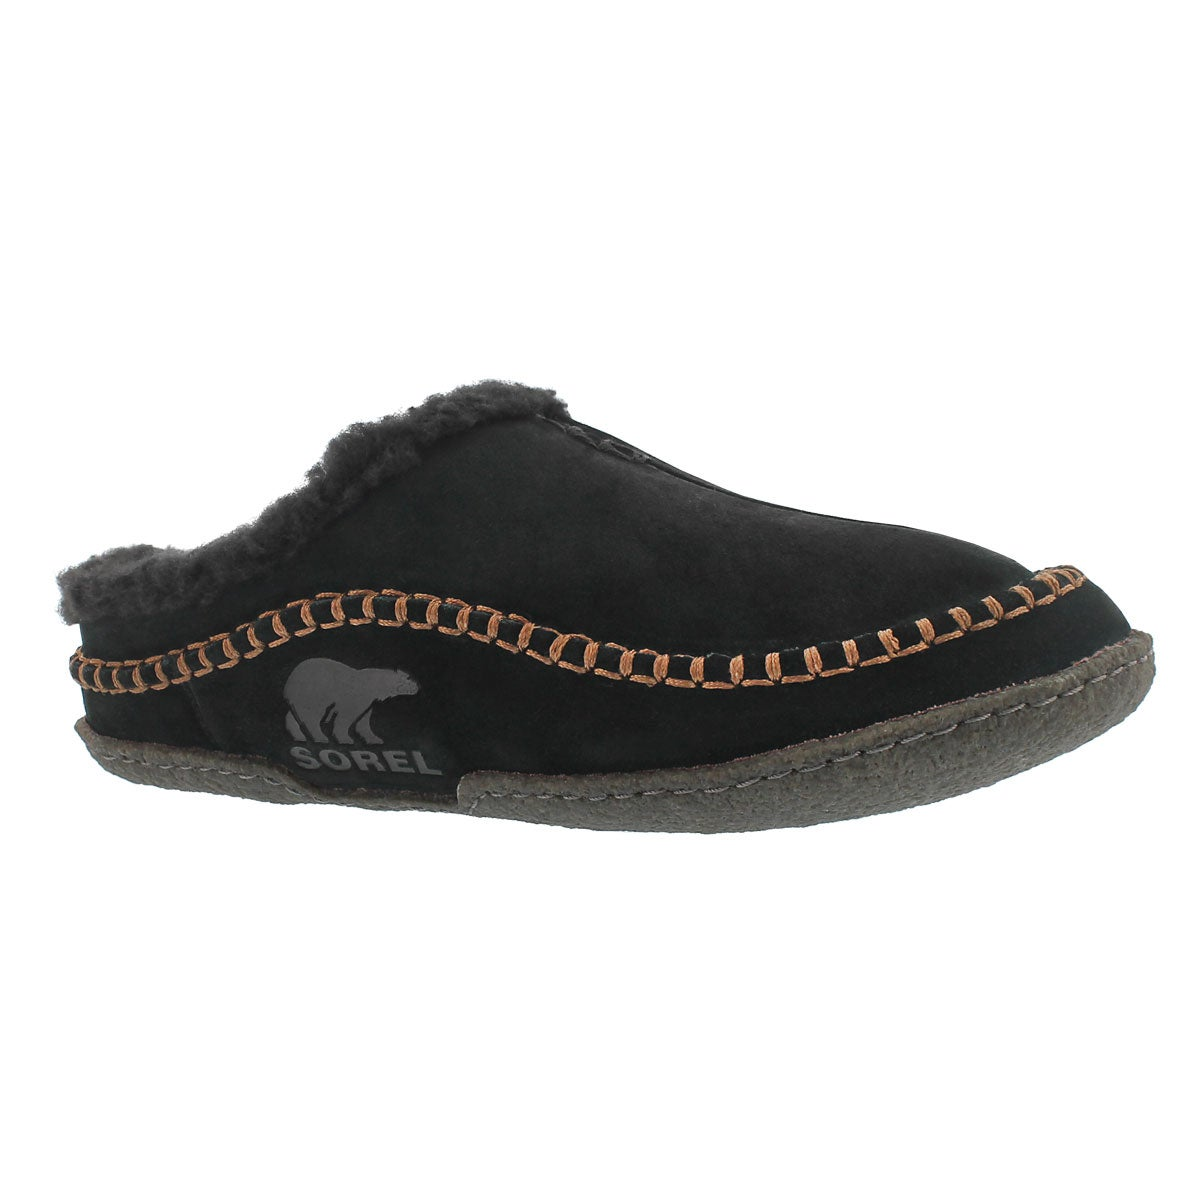 Men's FALCON RIDGE black open back slippers